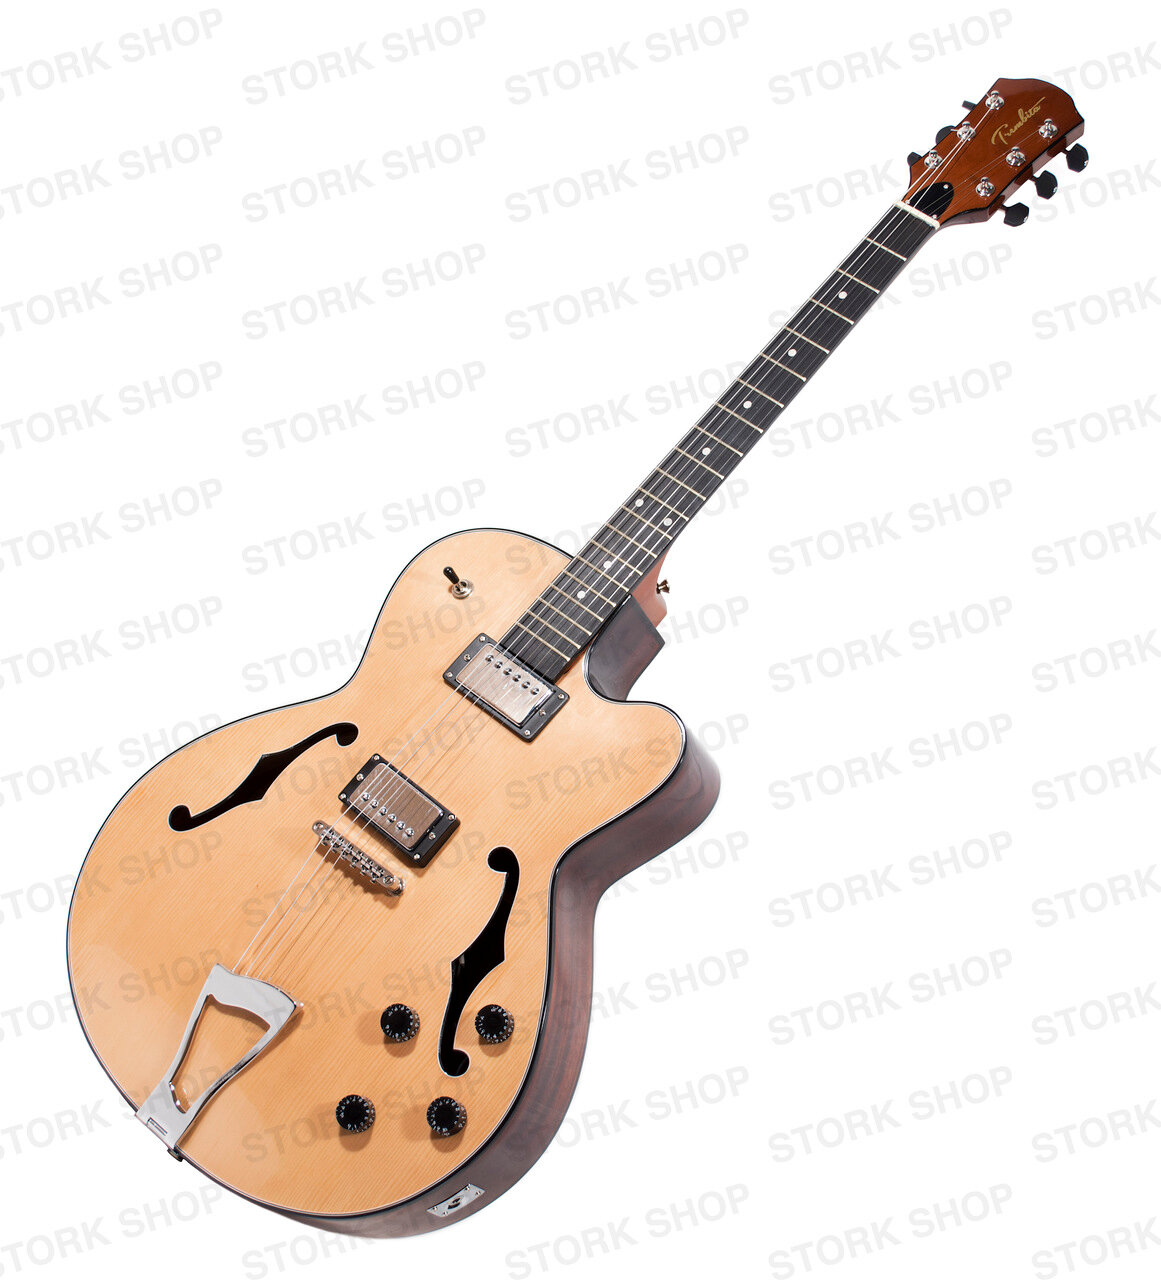 new arch top hollow body cutaway electric guitar 6 six strings natural spruce ebay. Black Bedroom Furniture Sets. Home Design Ideas